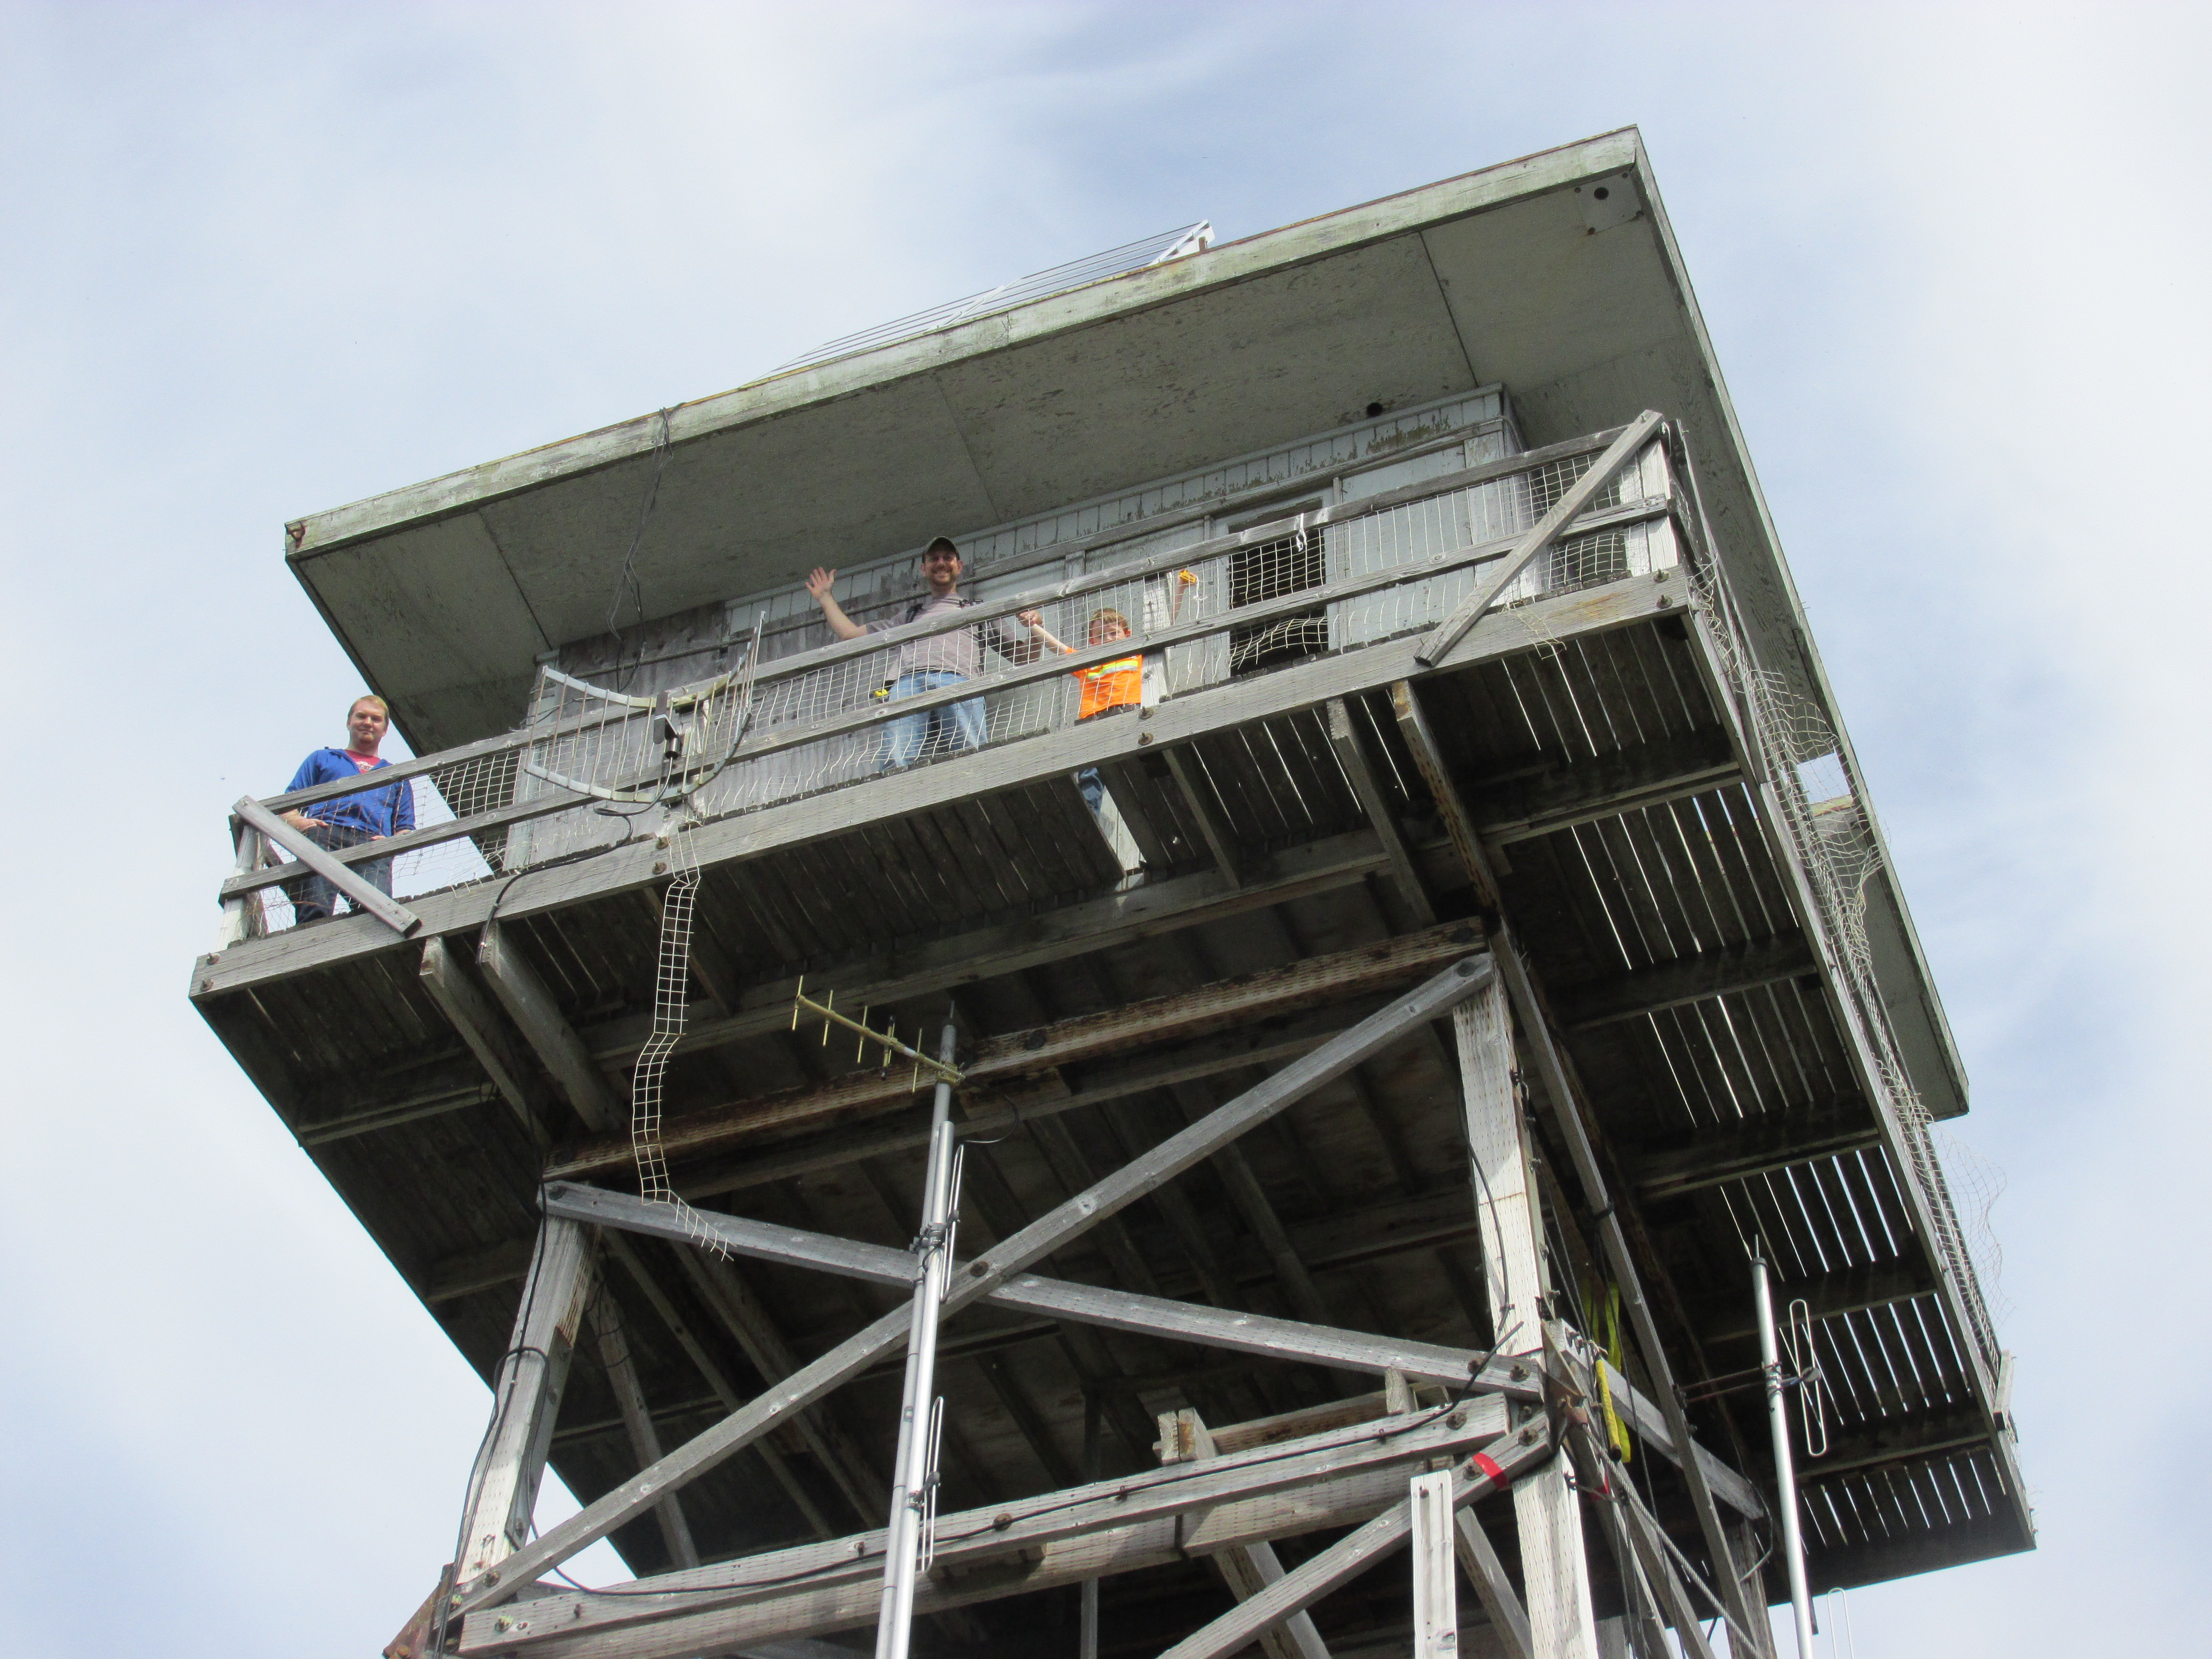 lookout tower repair